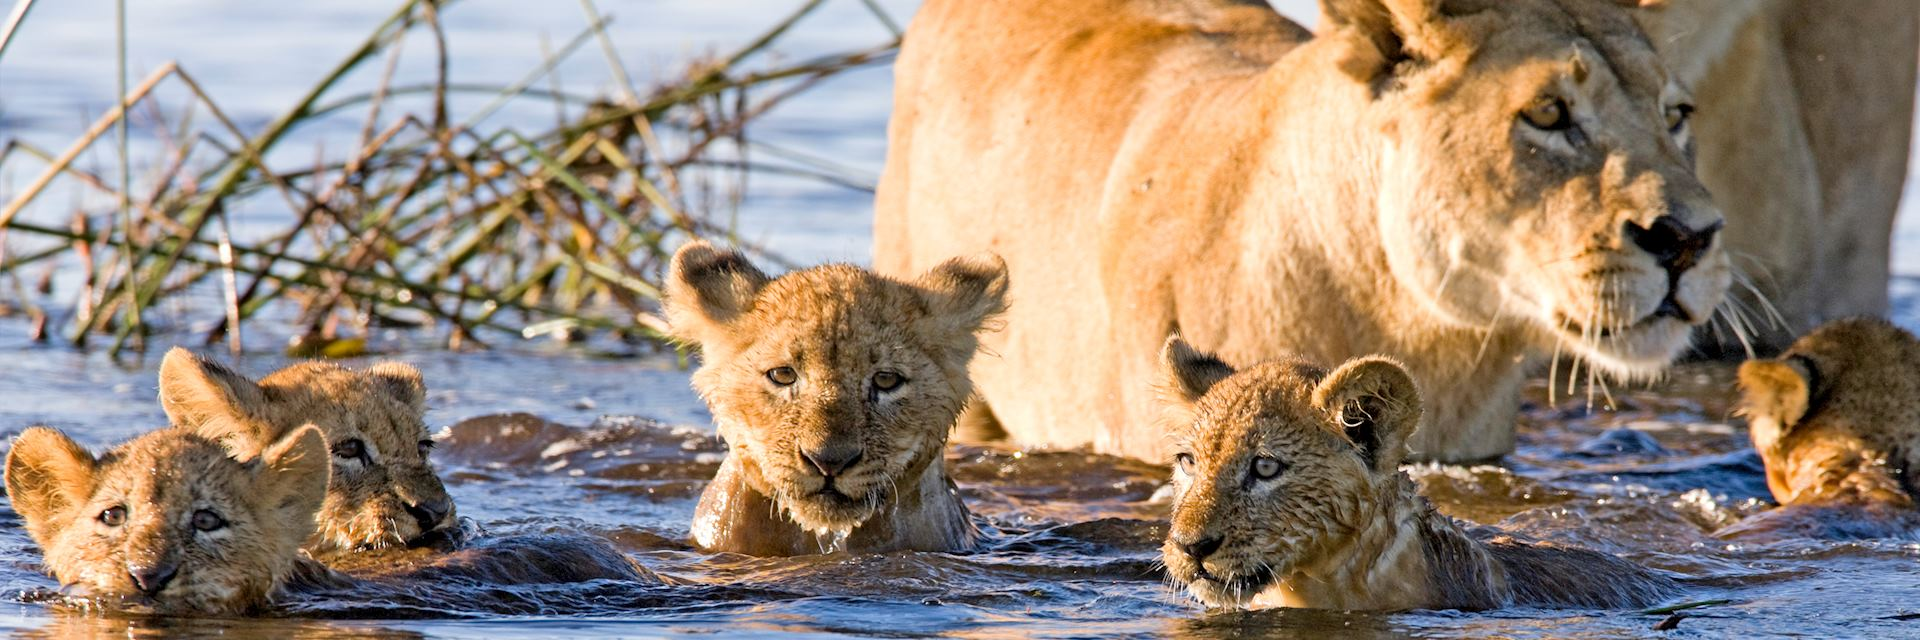 Lion cubs swimming in the Okavango Delta